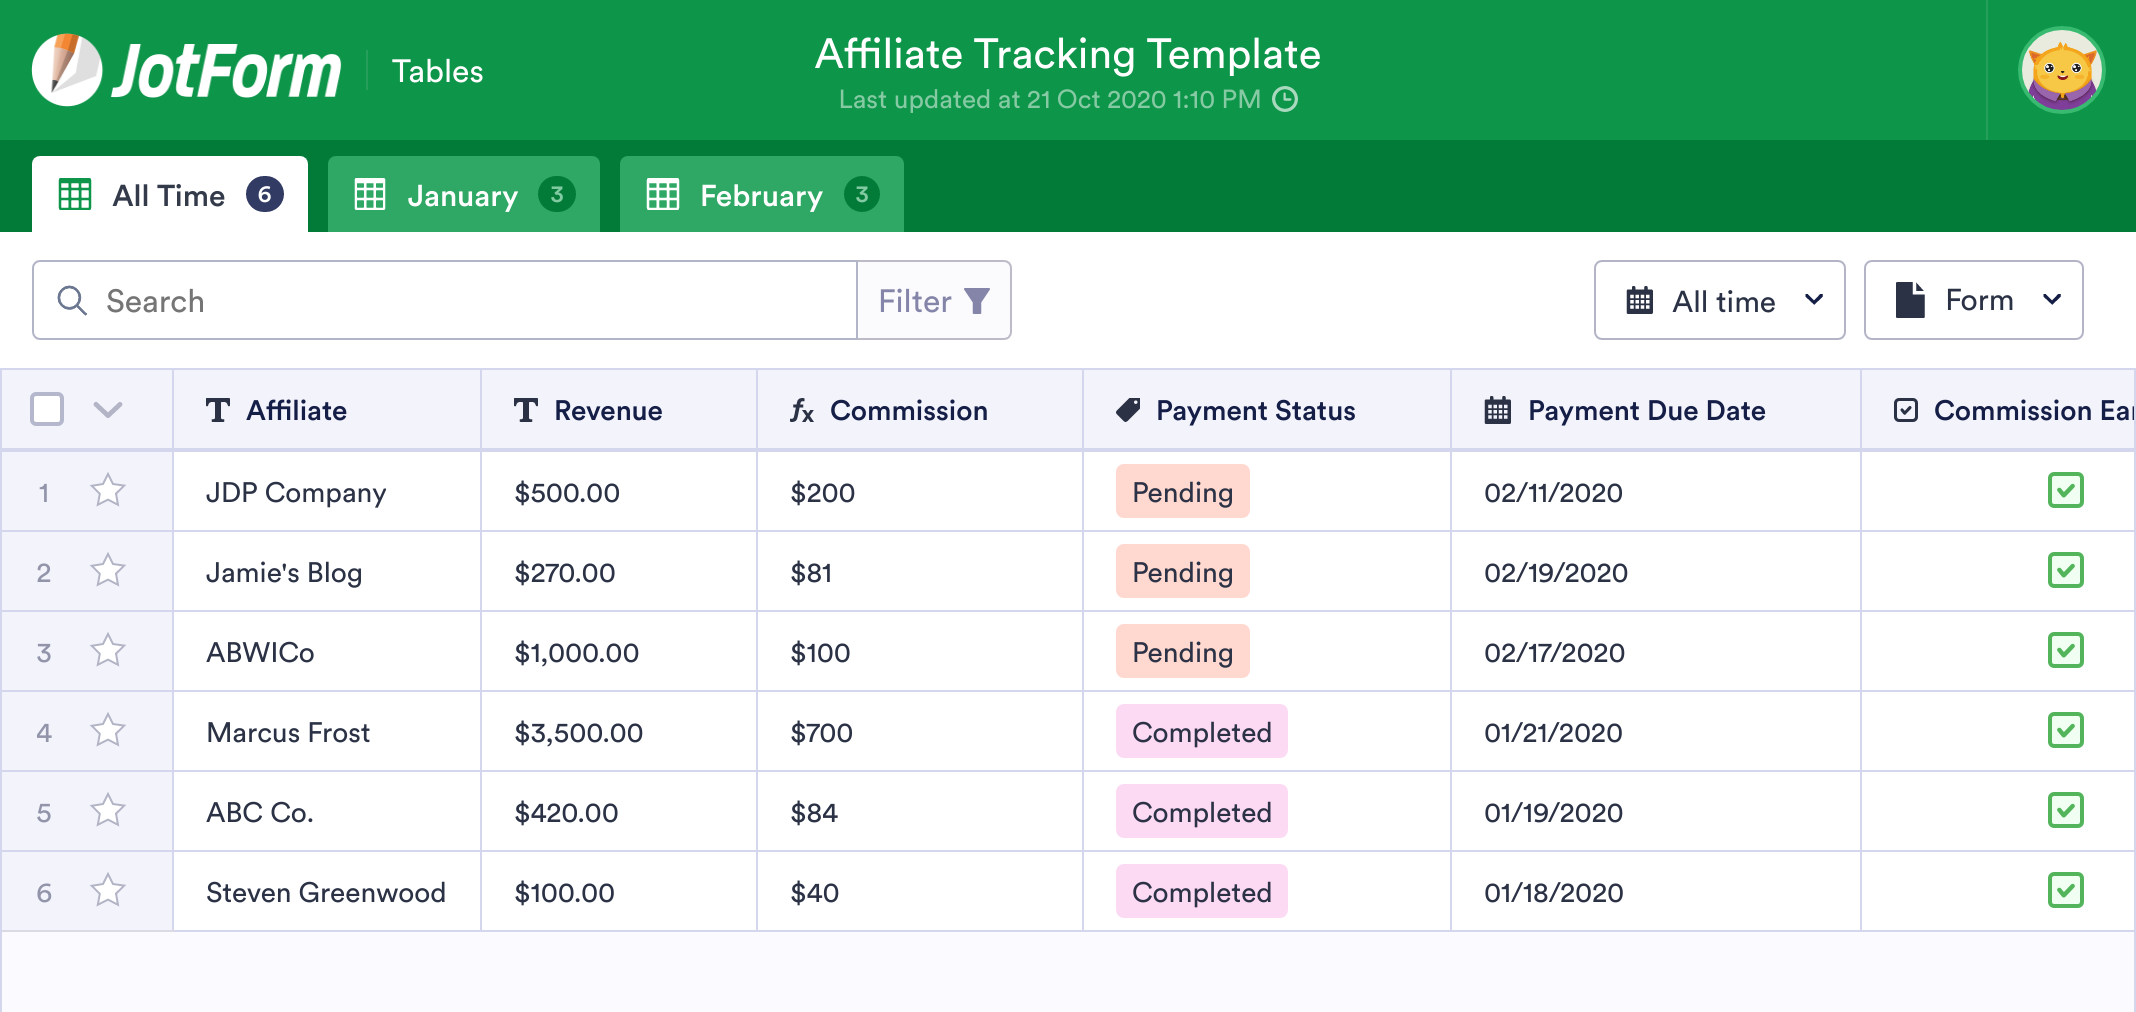 Affiliate Tracking Template